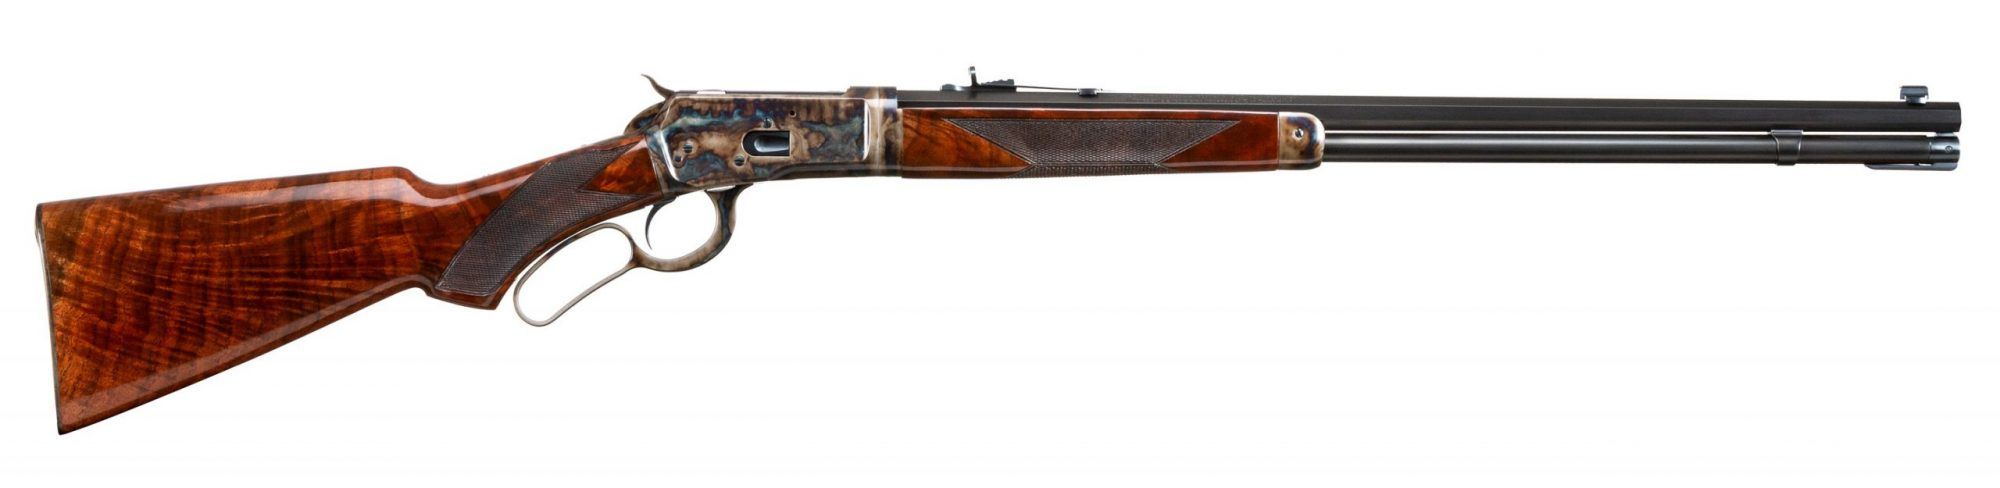 Photo of a Turnbull Finished Winchester 1892 Deluxe Takedown, featuring case color hardening, rust blue barrel and magazine tube finish, and hand-rubbed oil wood finish